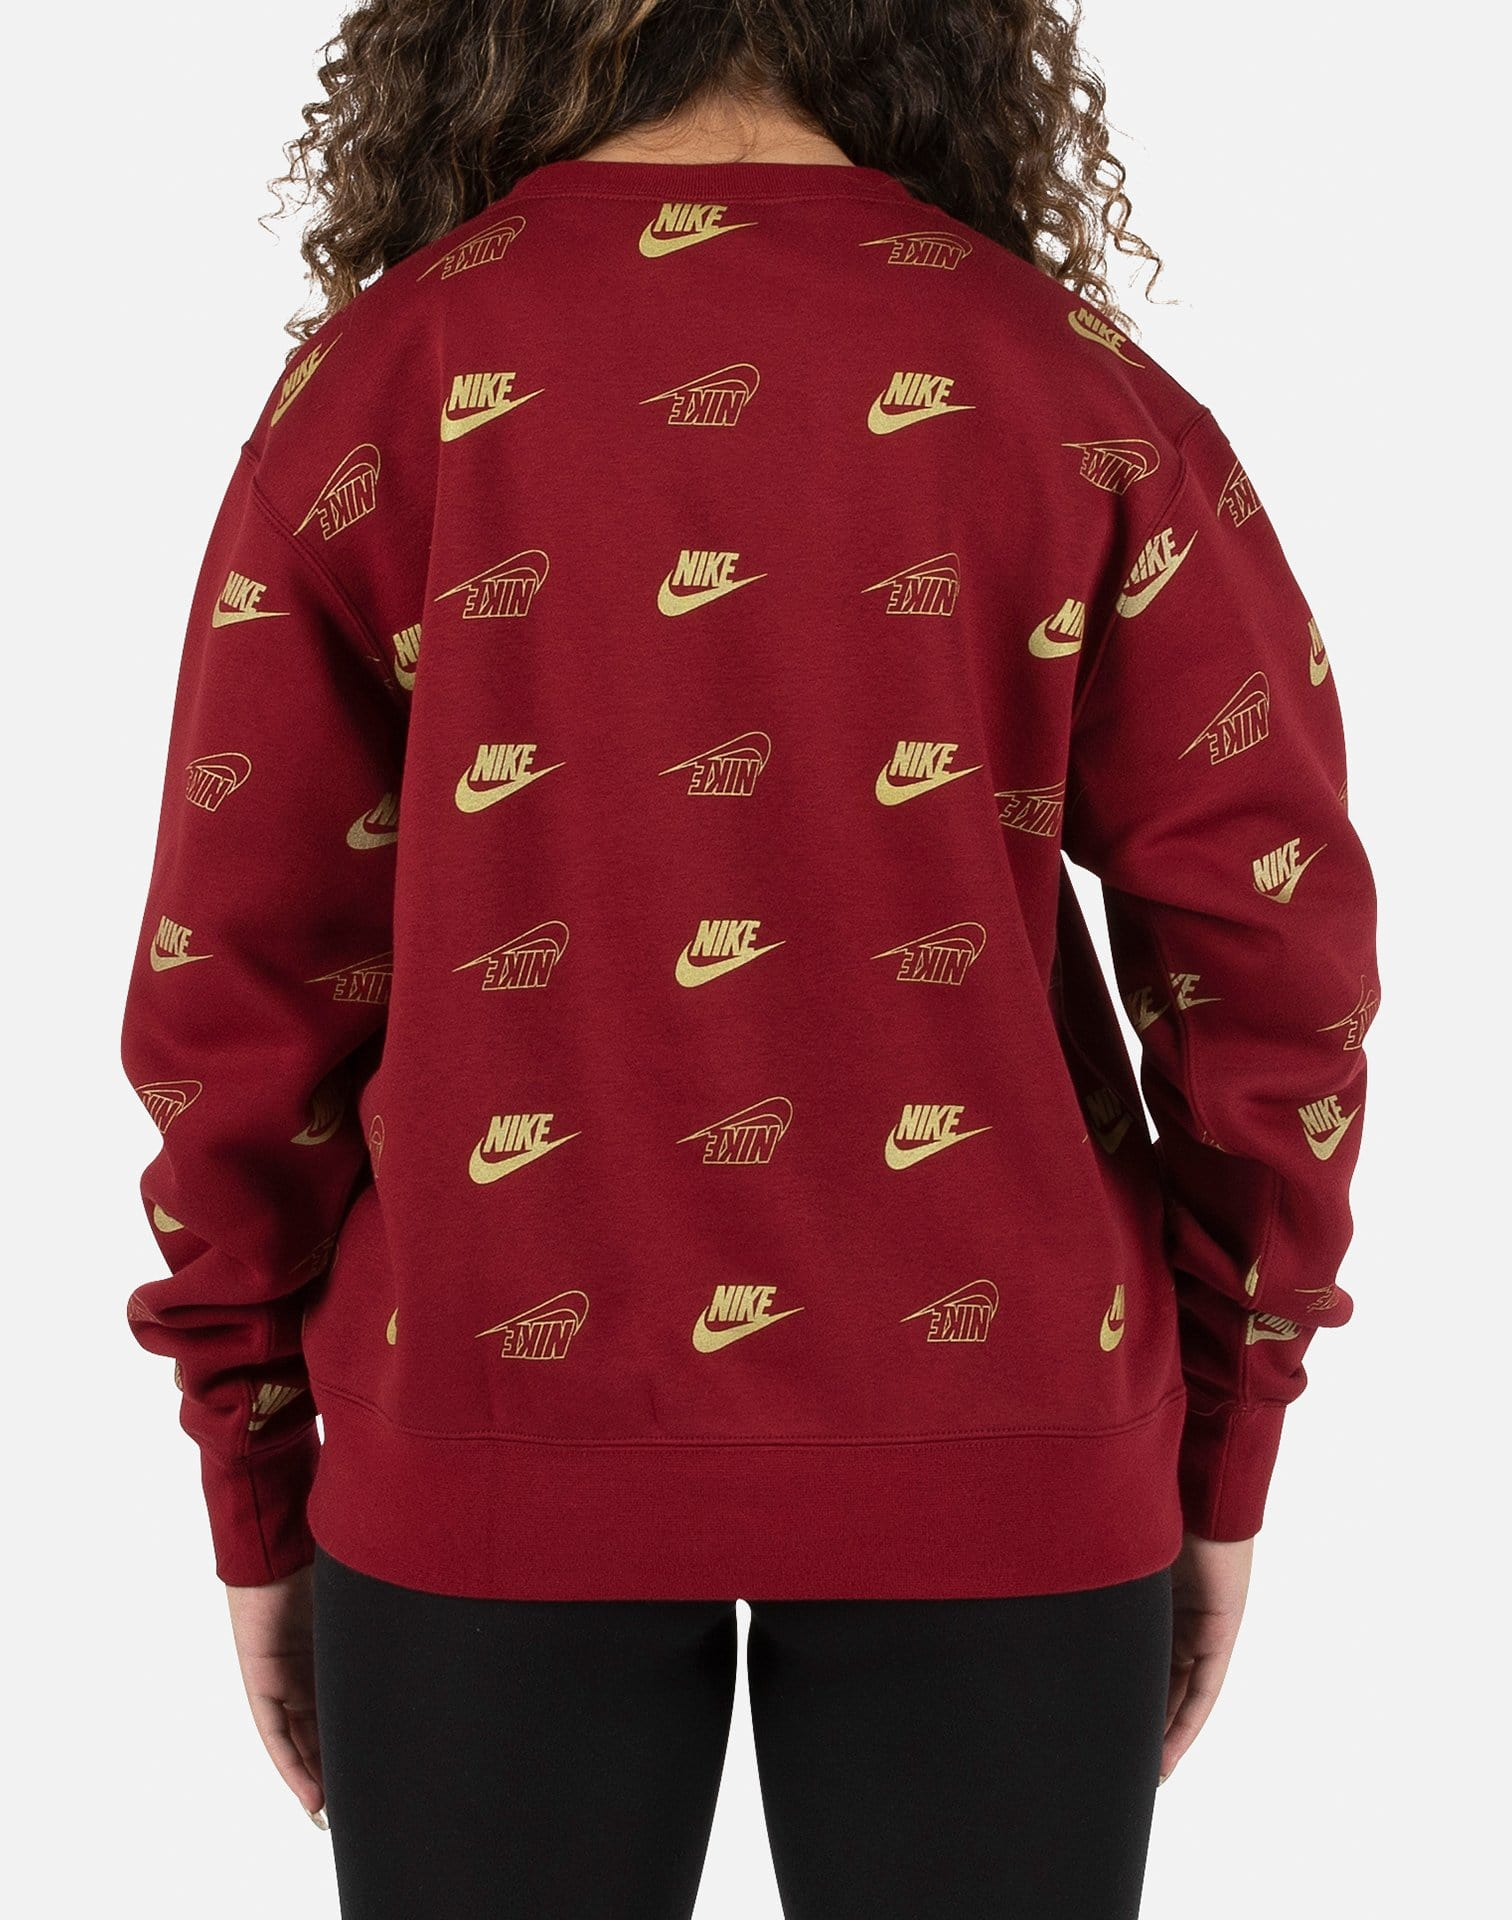 Nike Women's NSW Shine All Over Print Crew